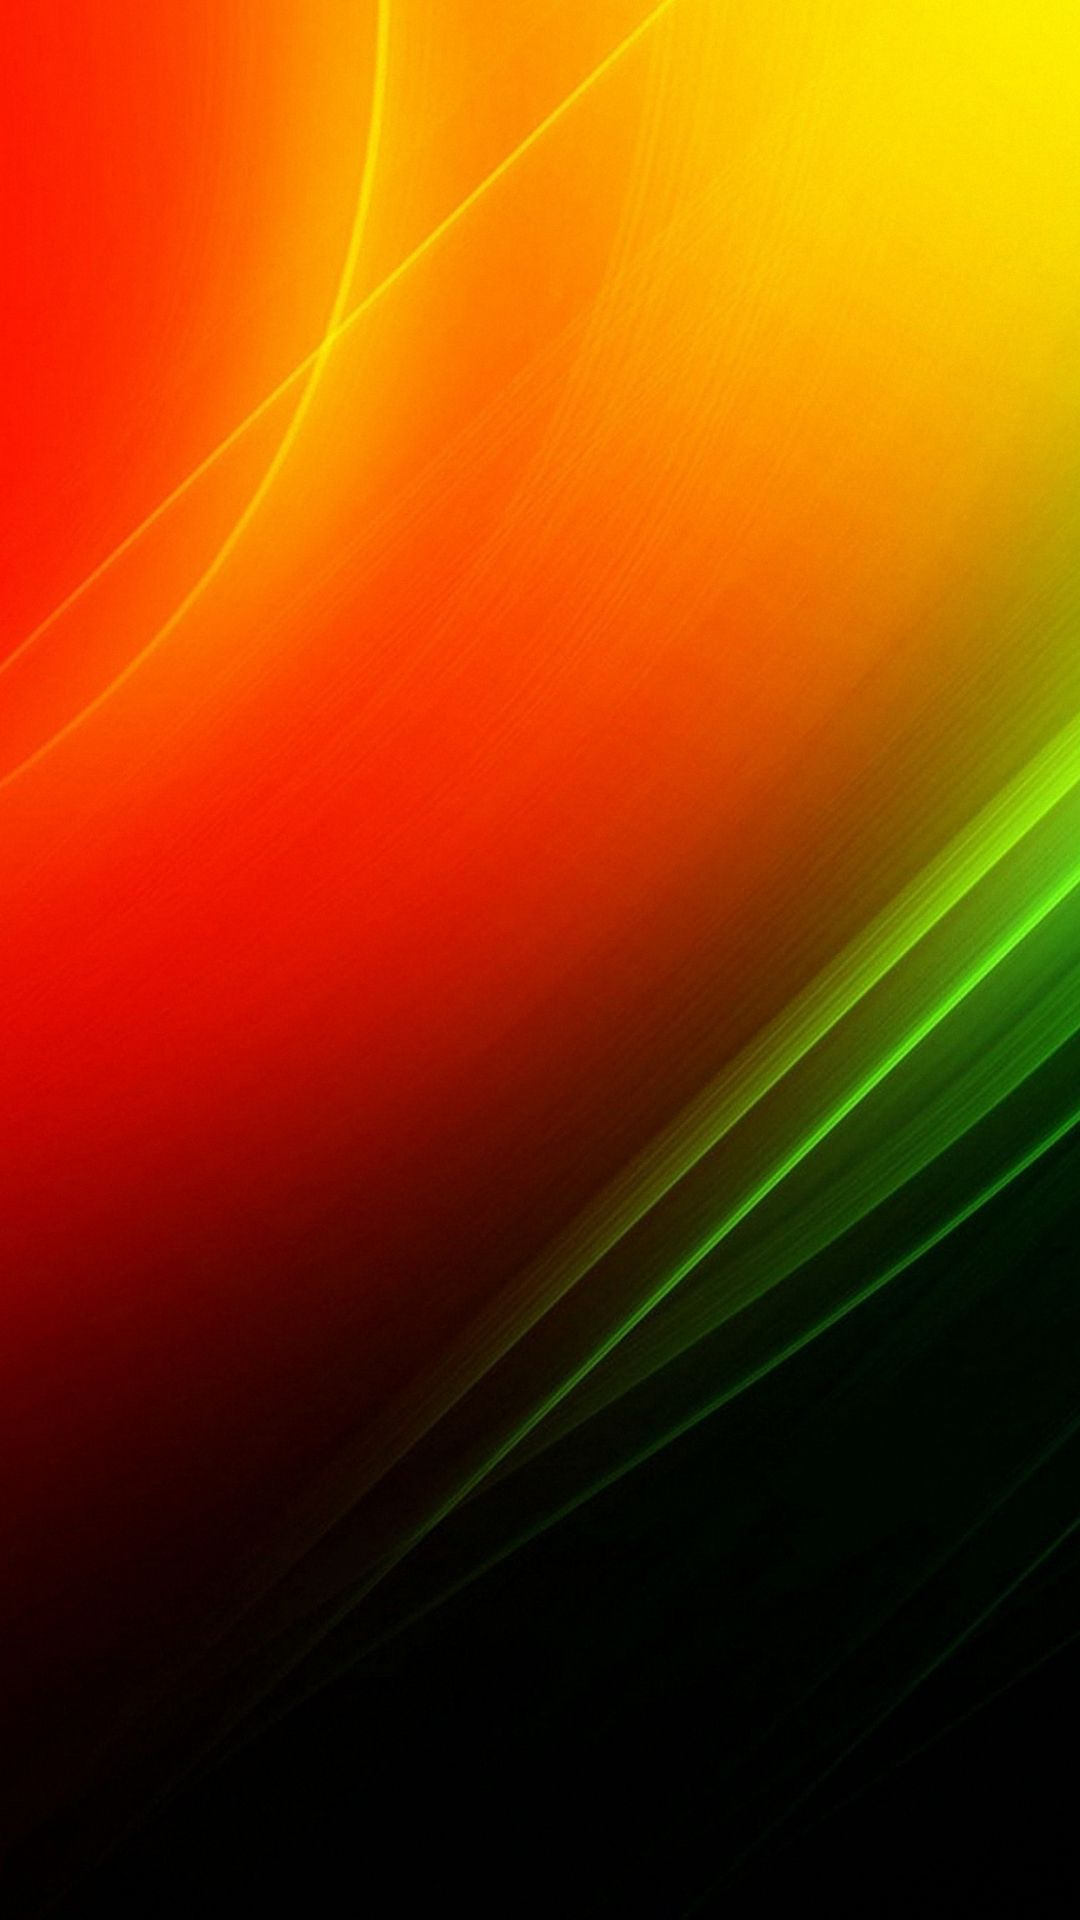 Hd wallpaper colour - Color Line Abstract Iphone 6 Wallpapers Hd